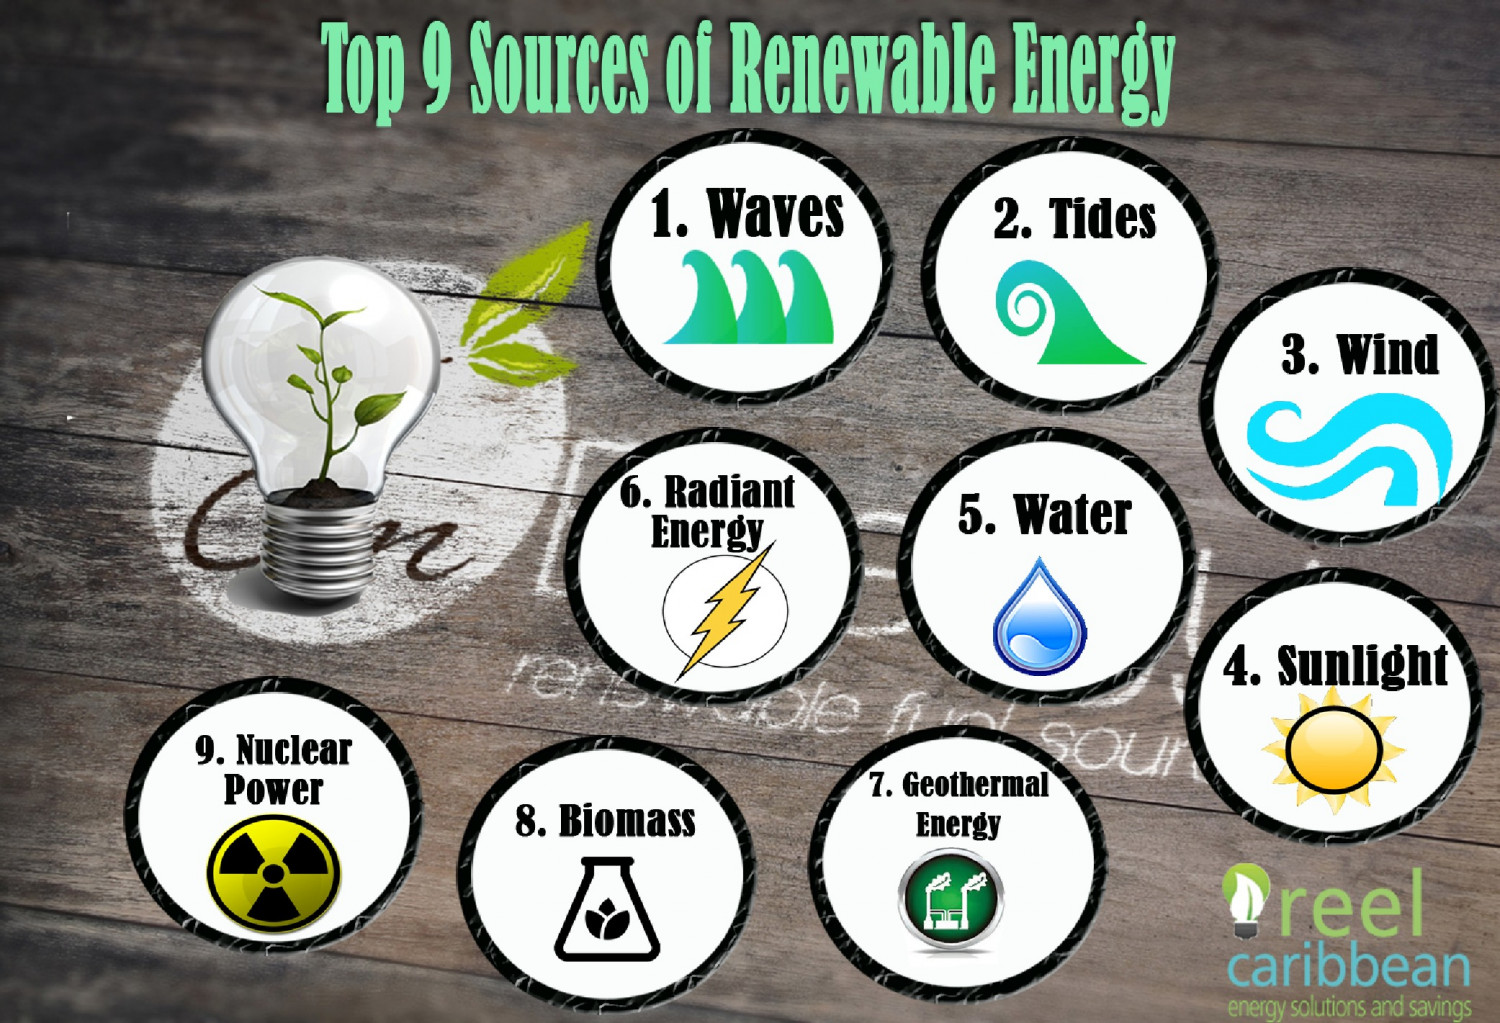 alternative sources of energy and electric Using renewable energy to power your home can reduce or completely to pay for grid electricity or invest in a second type of renewable energy with a source of renewable energy generation like solar or wind power.